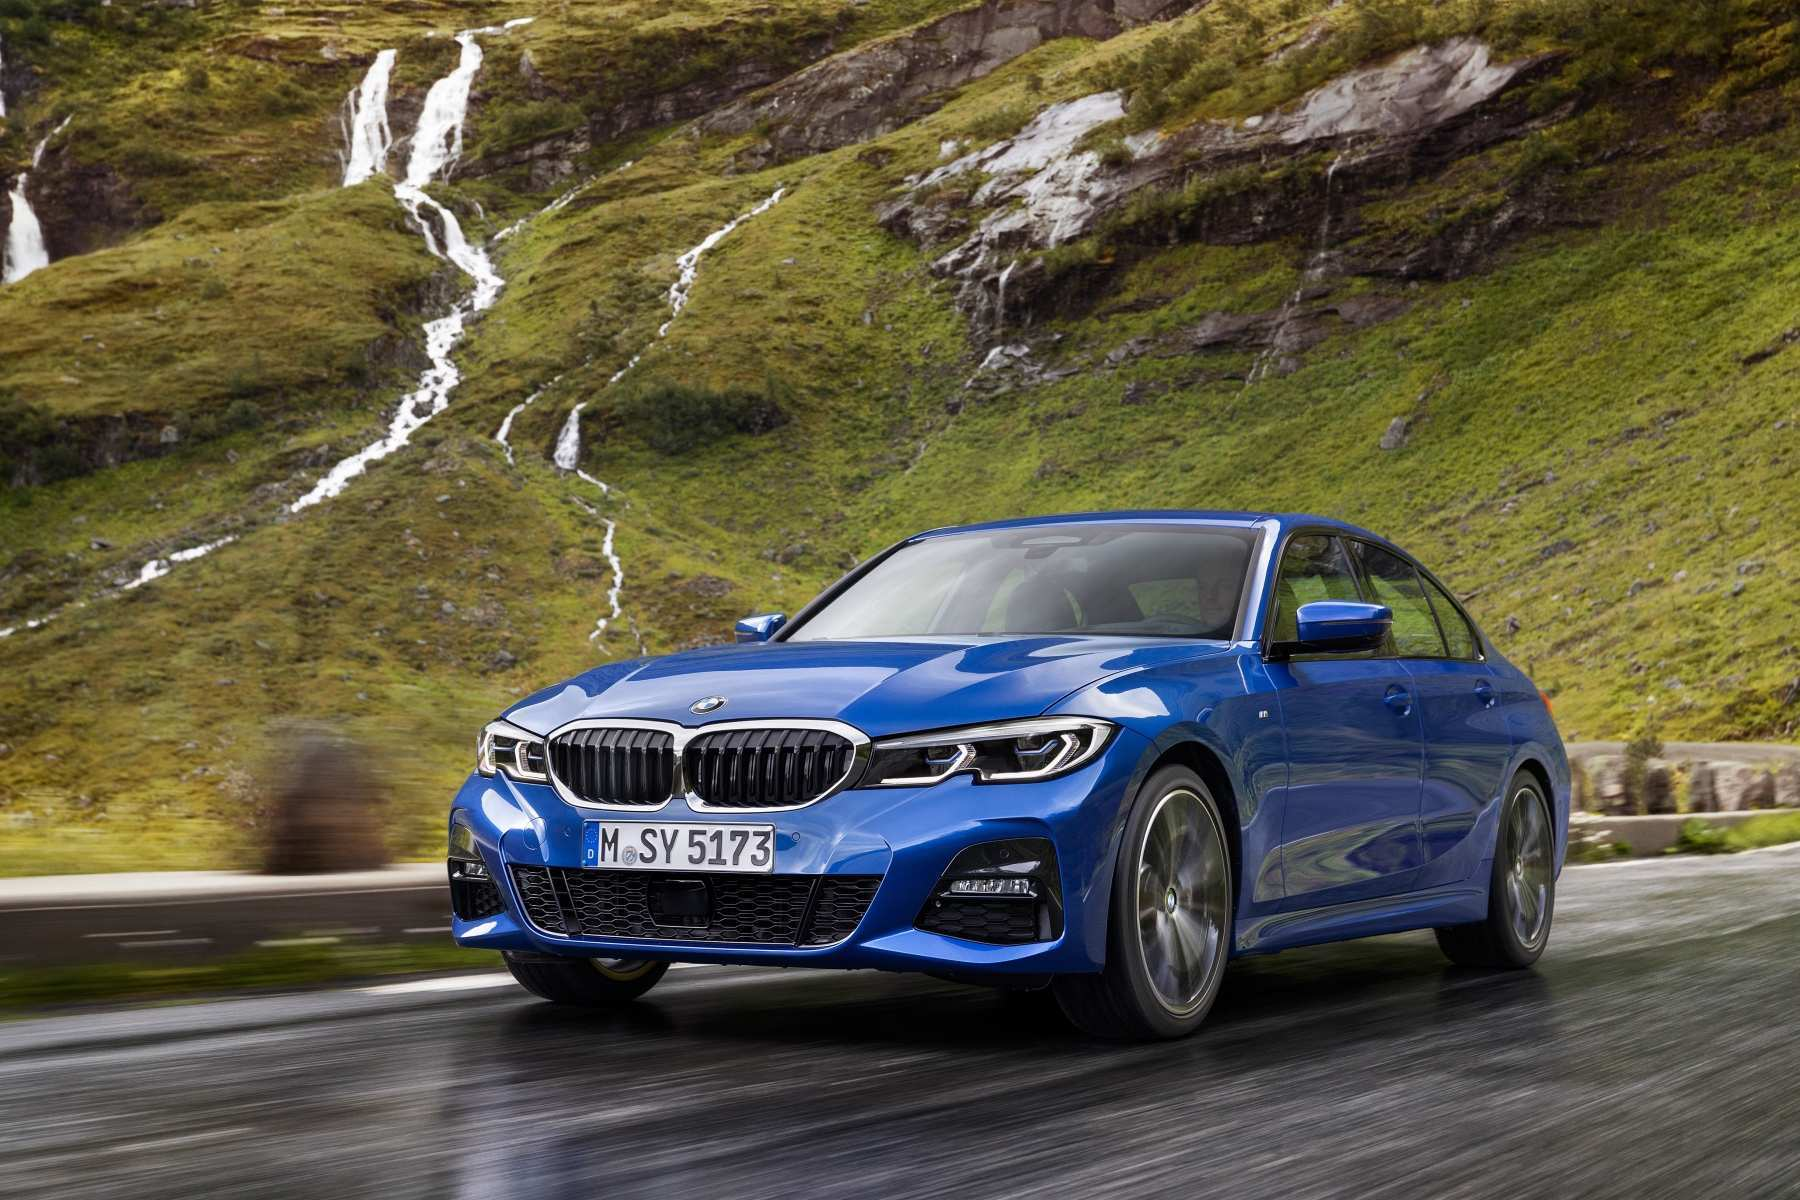 21 All New 2020 Bmw G20 Release for 2020 Bmw G20